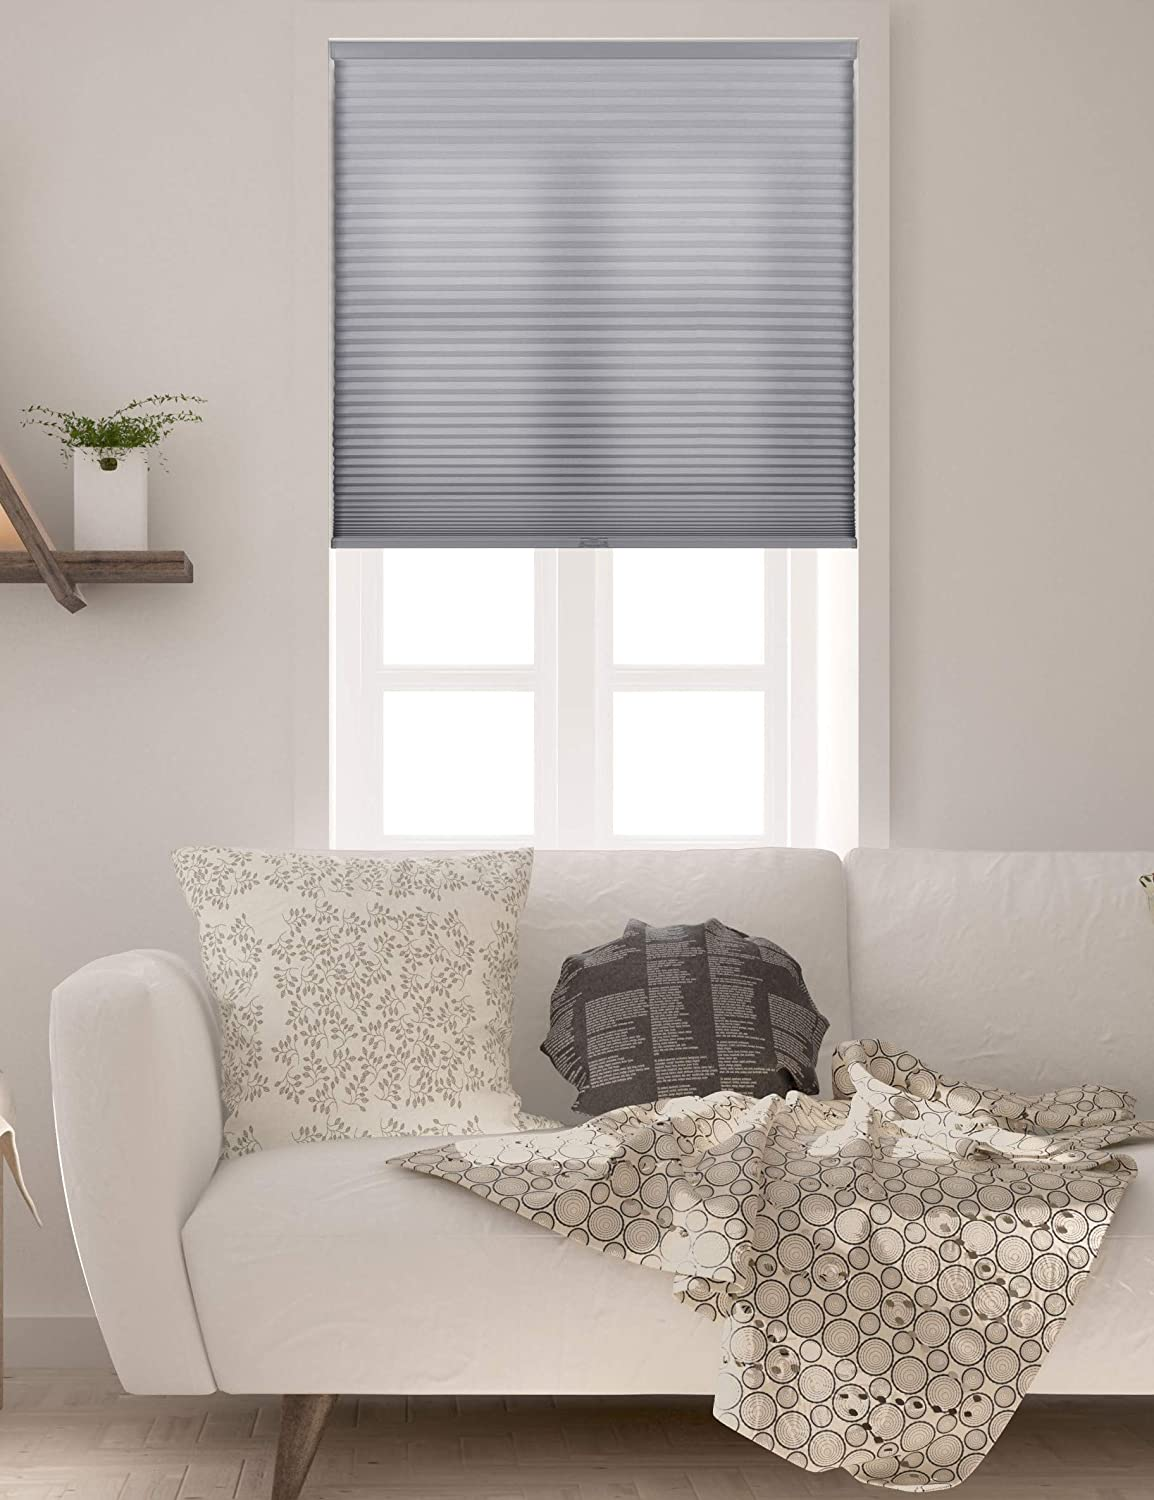 Amazon Com Arlo Blinds Single Cell Light Filtering Cordless Cellular Shades Color Grey Size 22 W X 72 H Home Kitchen